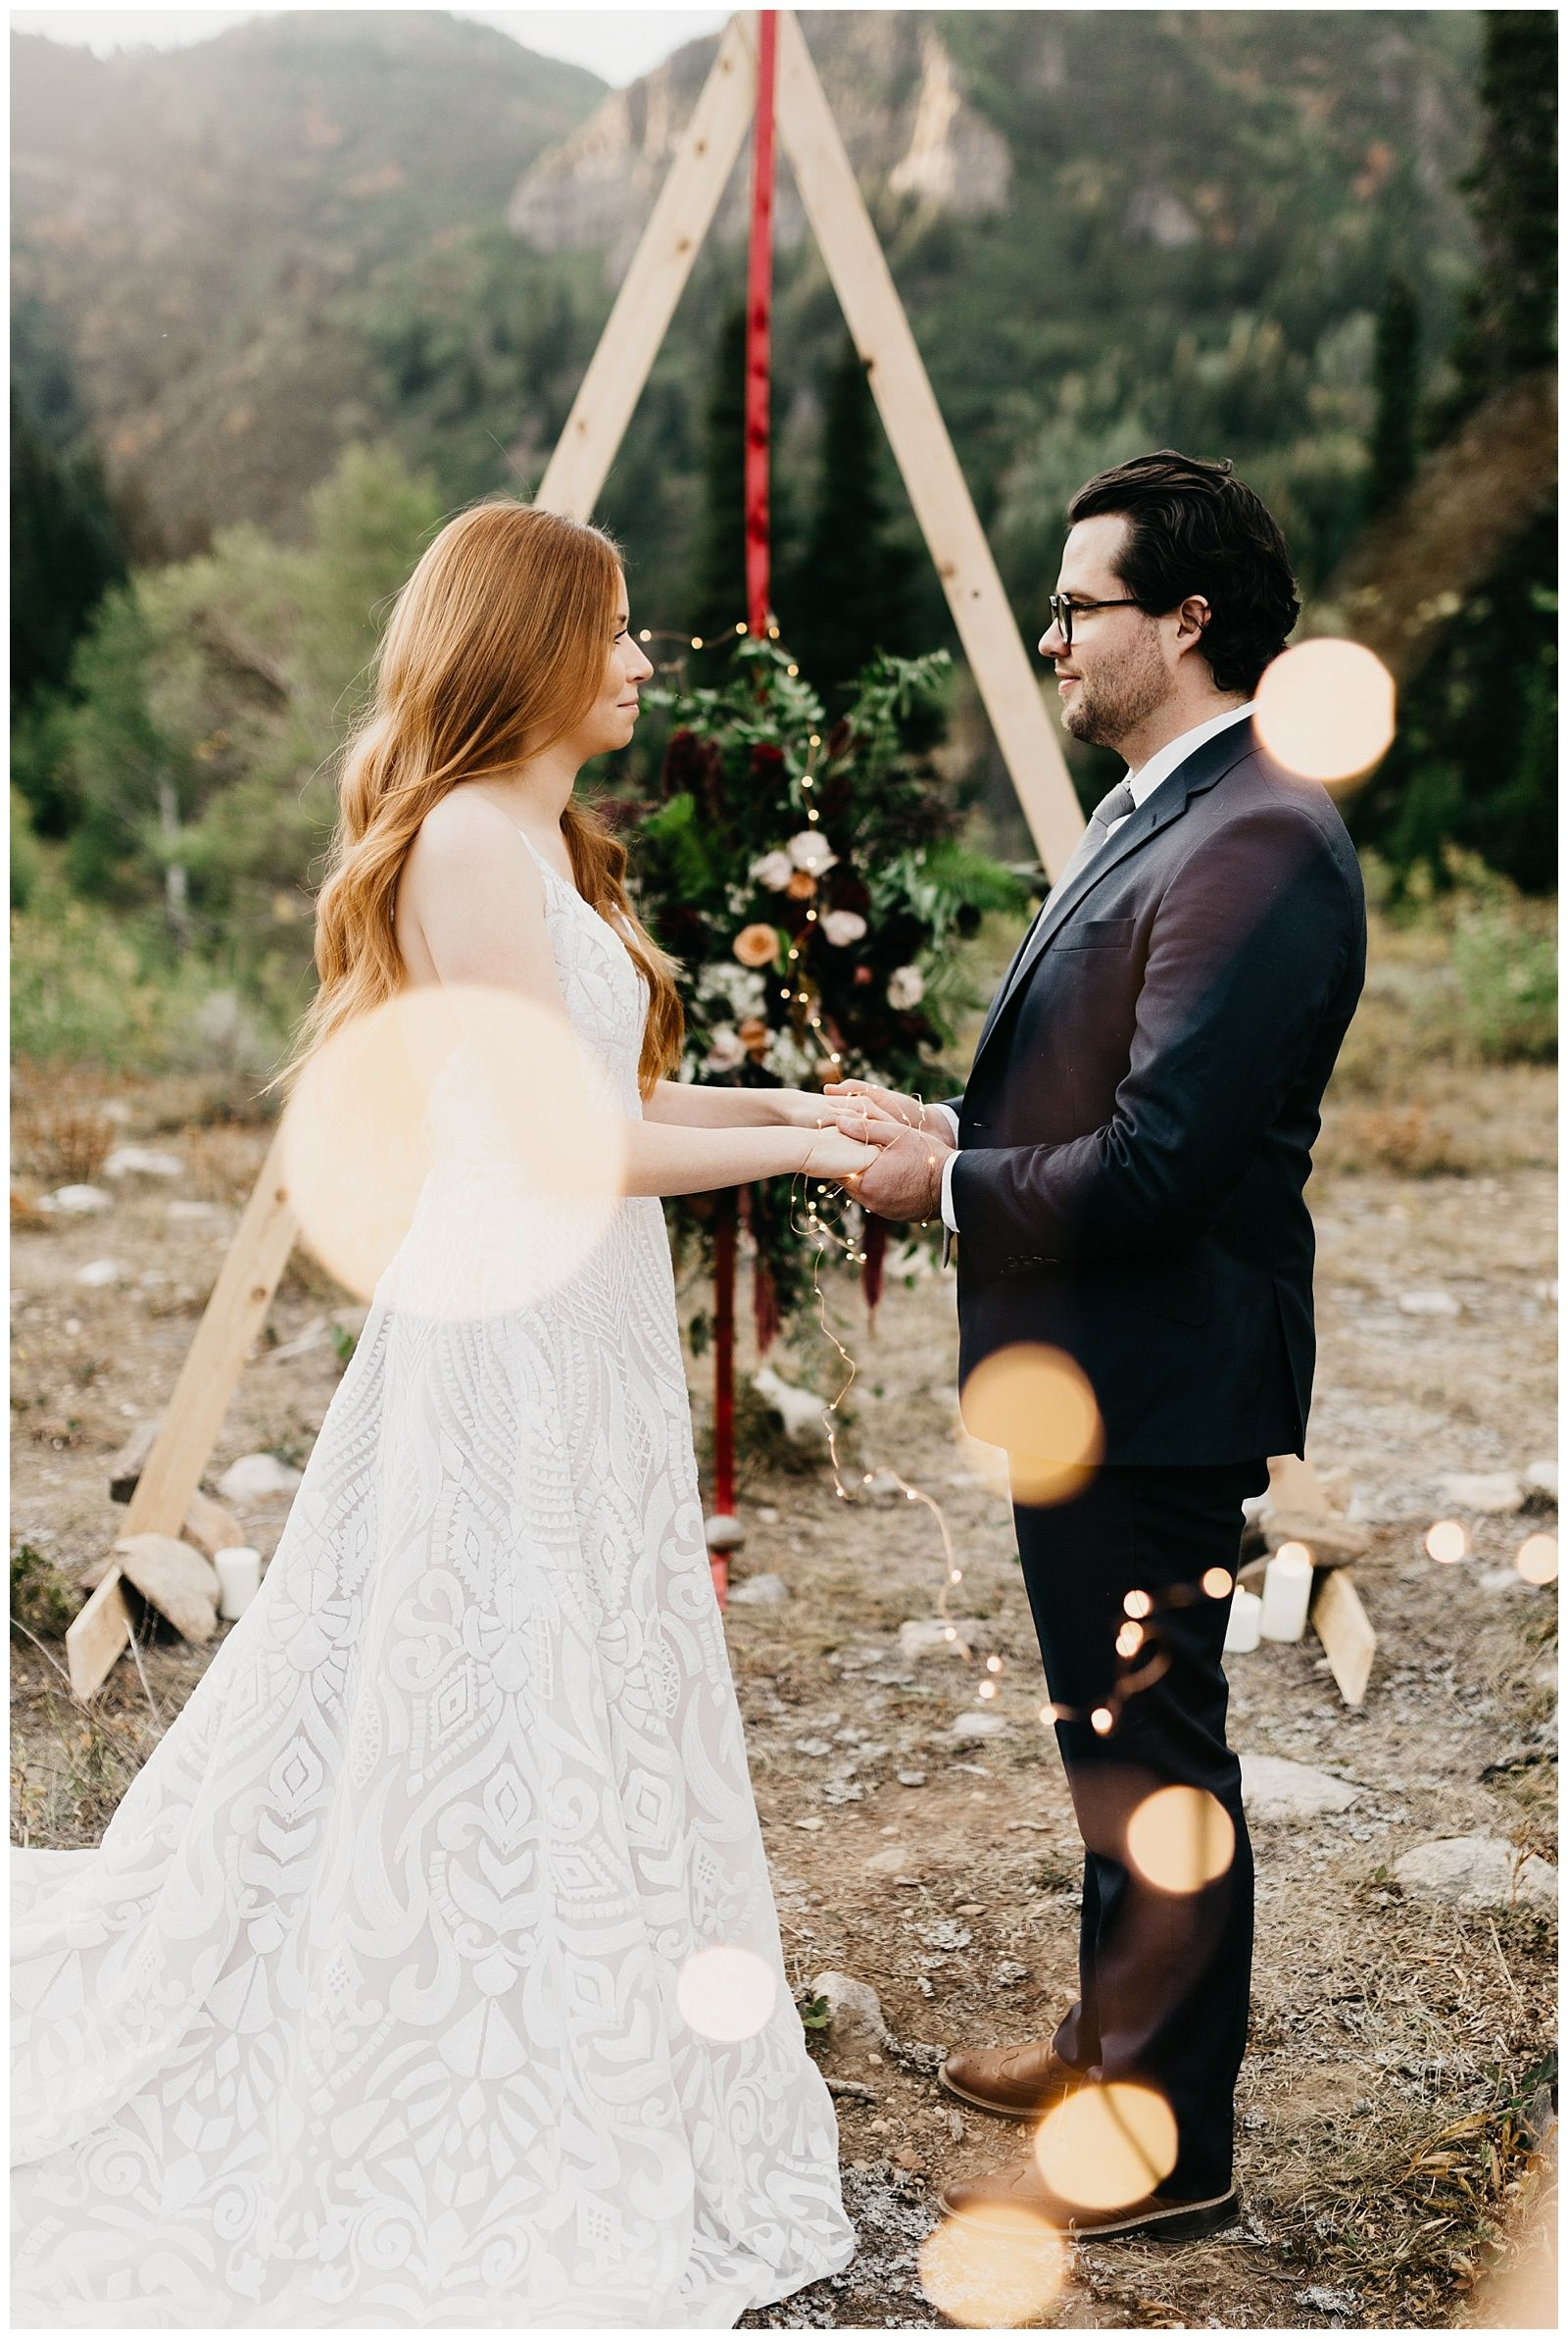 After all this timeu harry potter elopement nicole aston